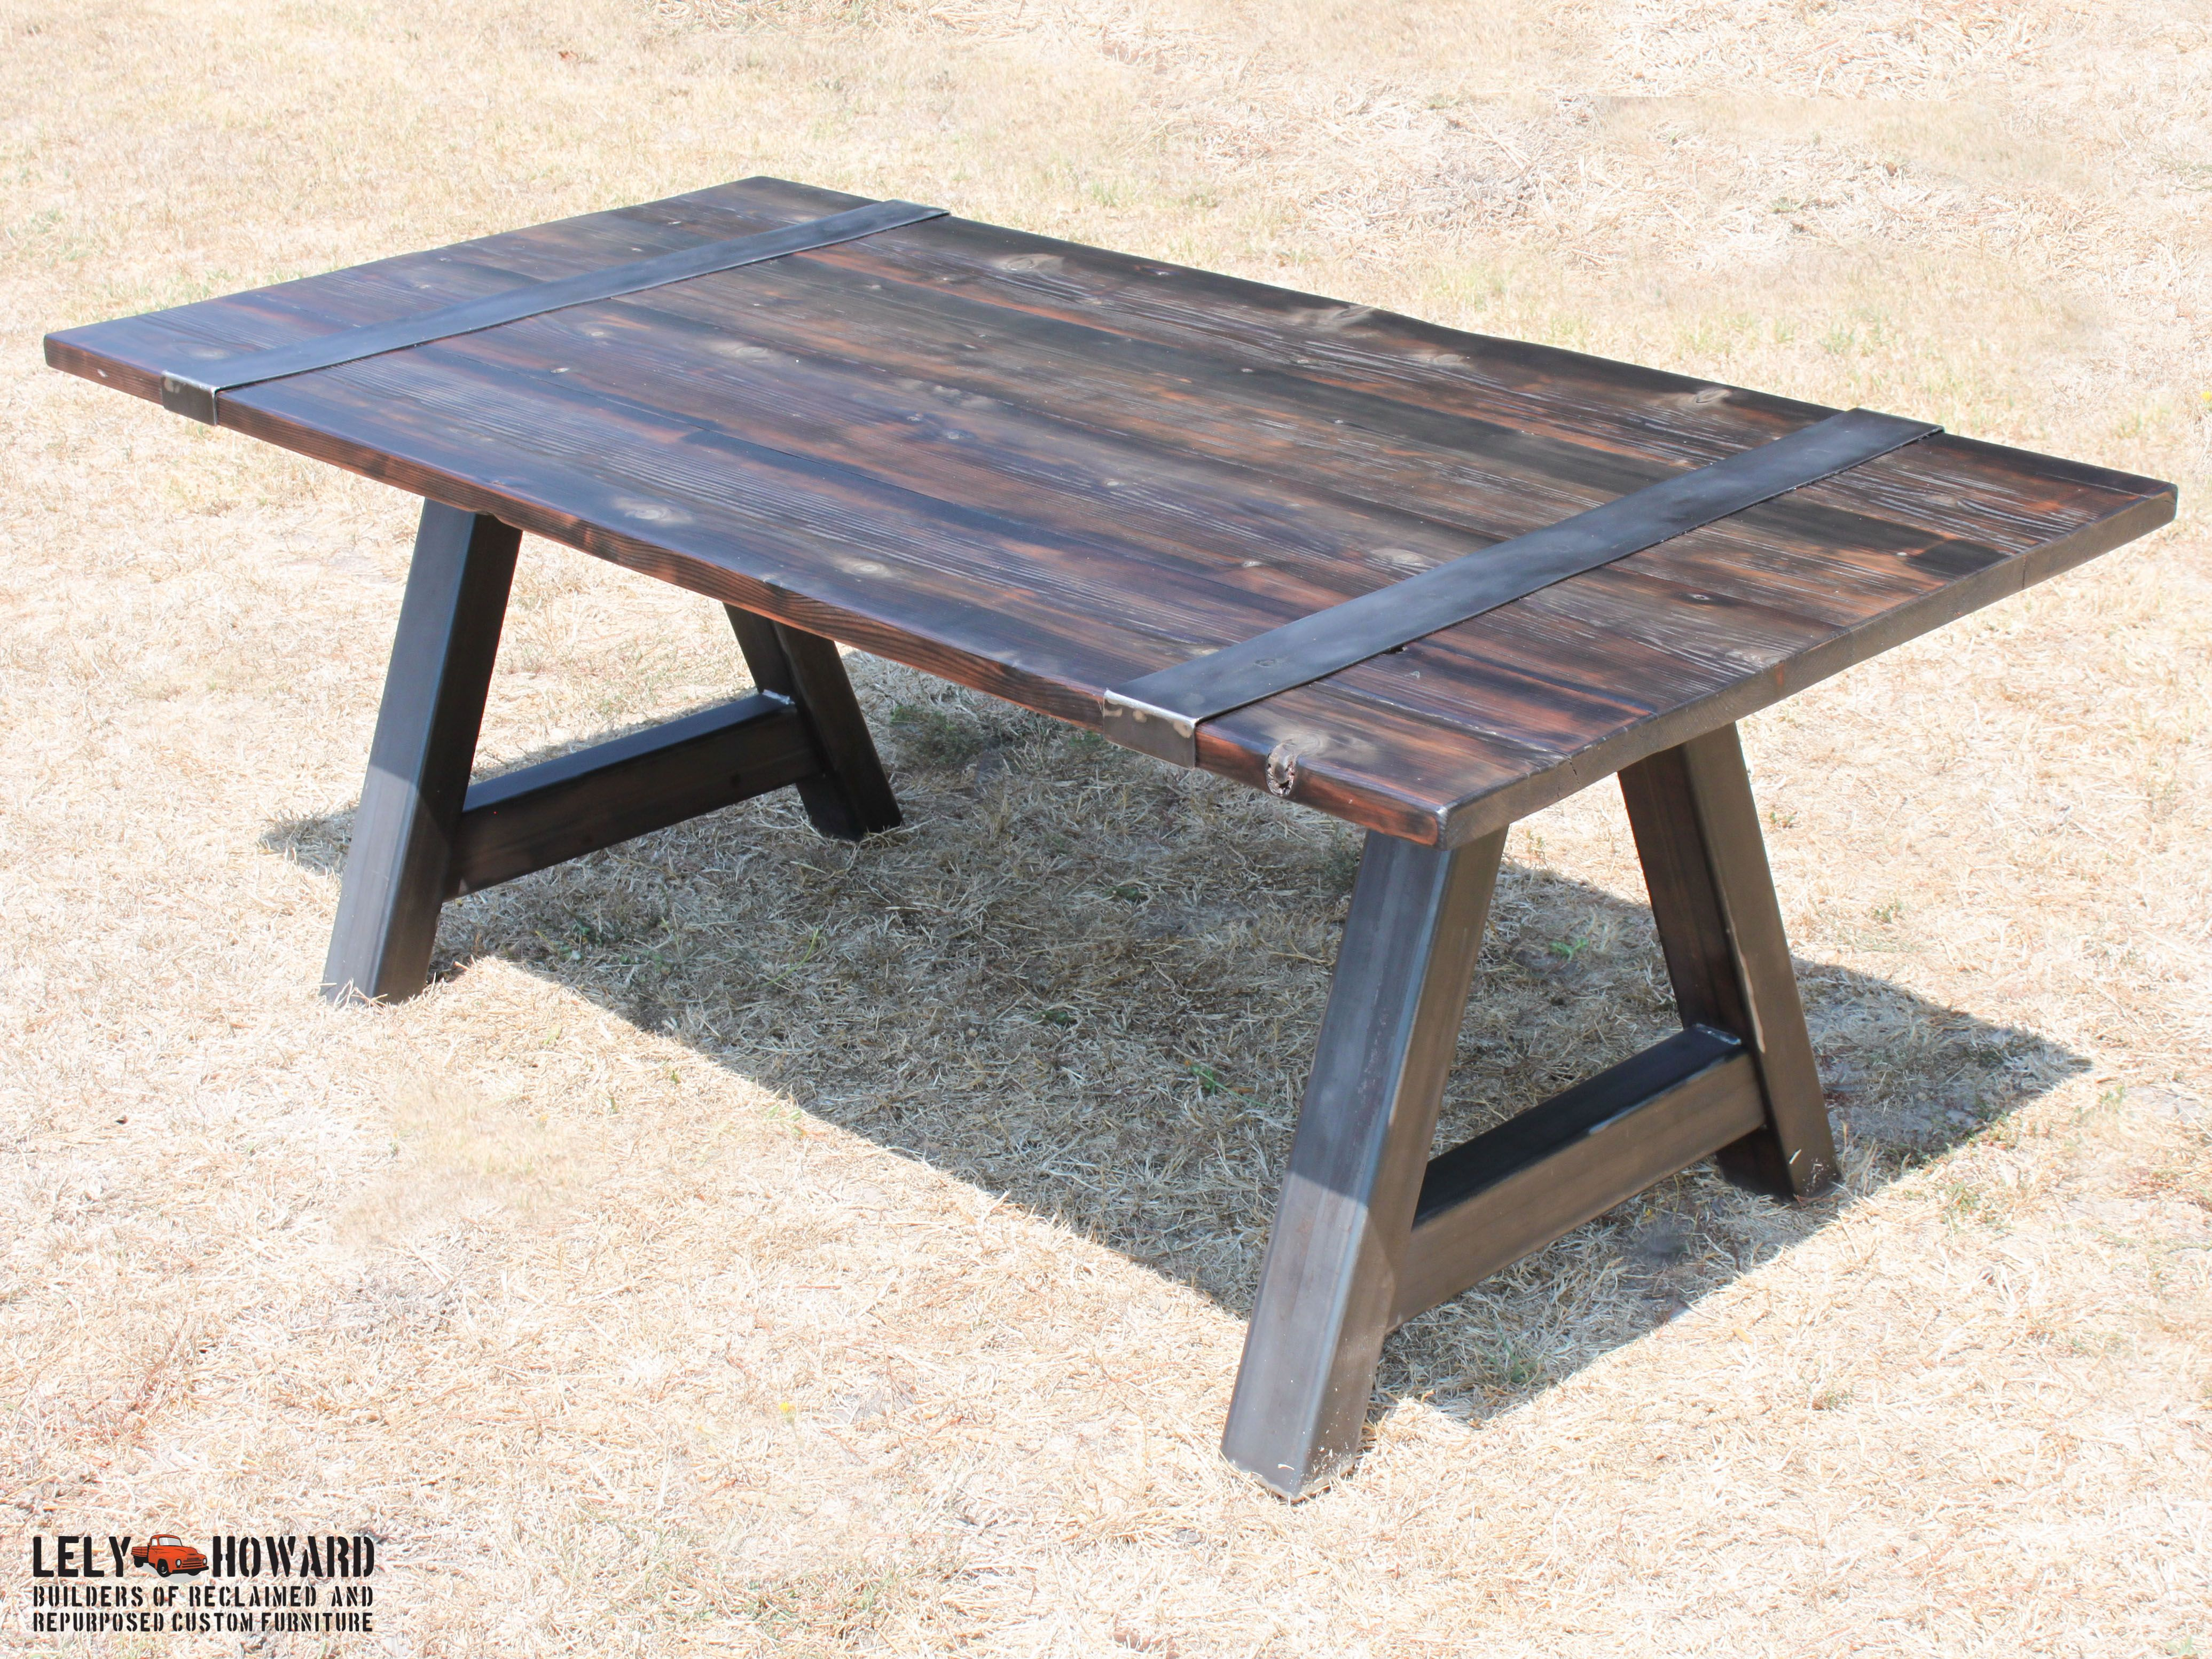 This Dining Table features a Steel A Frame